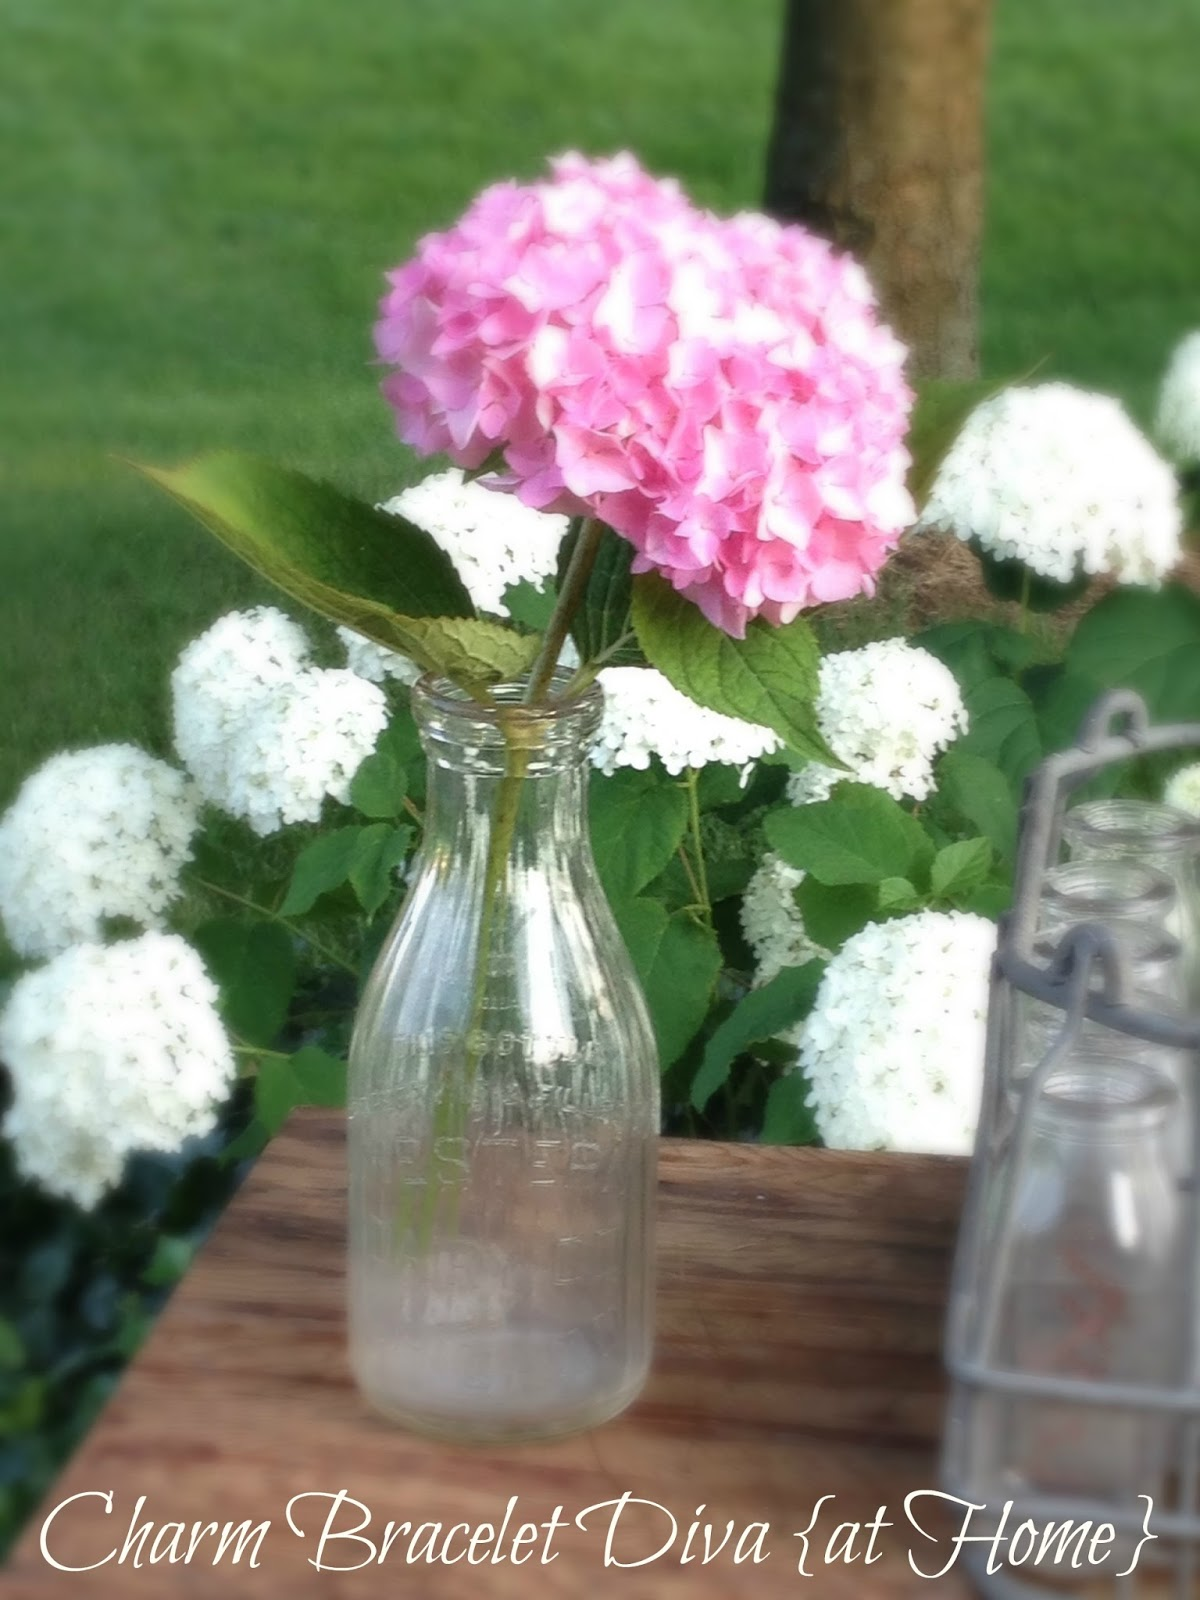 Our hopeful home displaying hydrangeas in vintage milk bottles hydrangea vintage flower vase milk bottle reviewsmspy